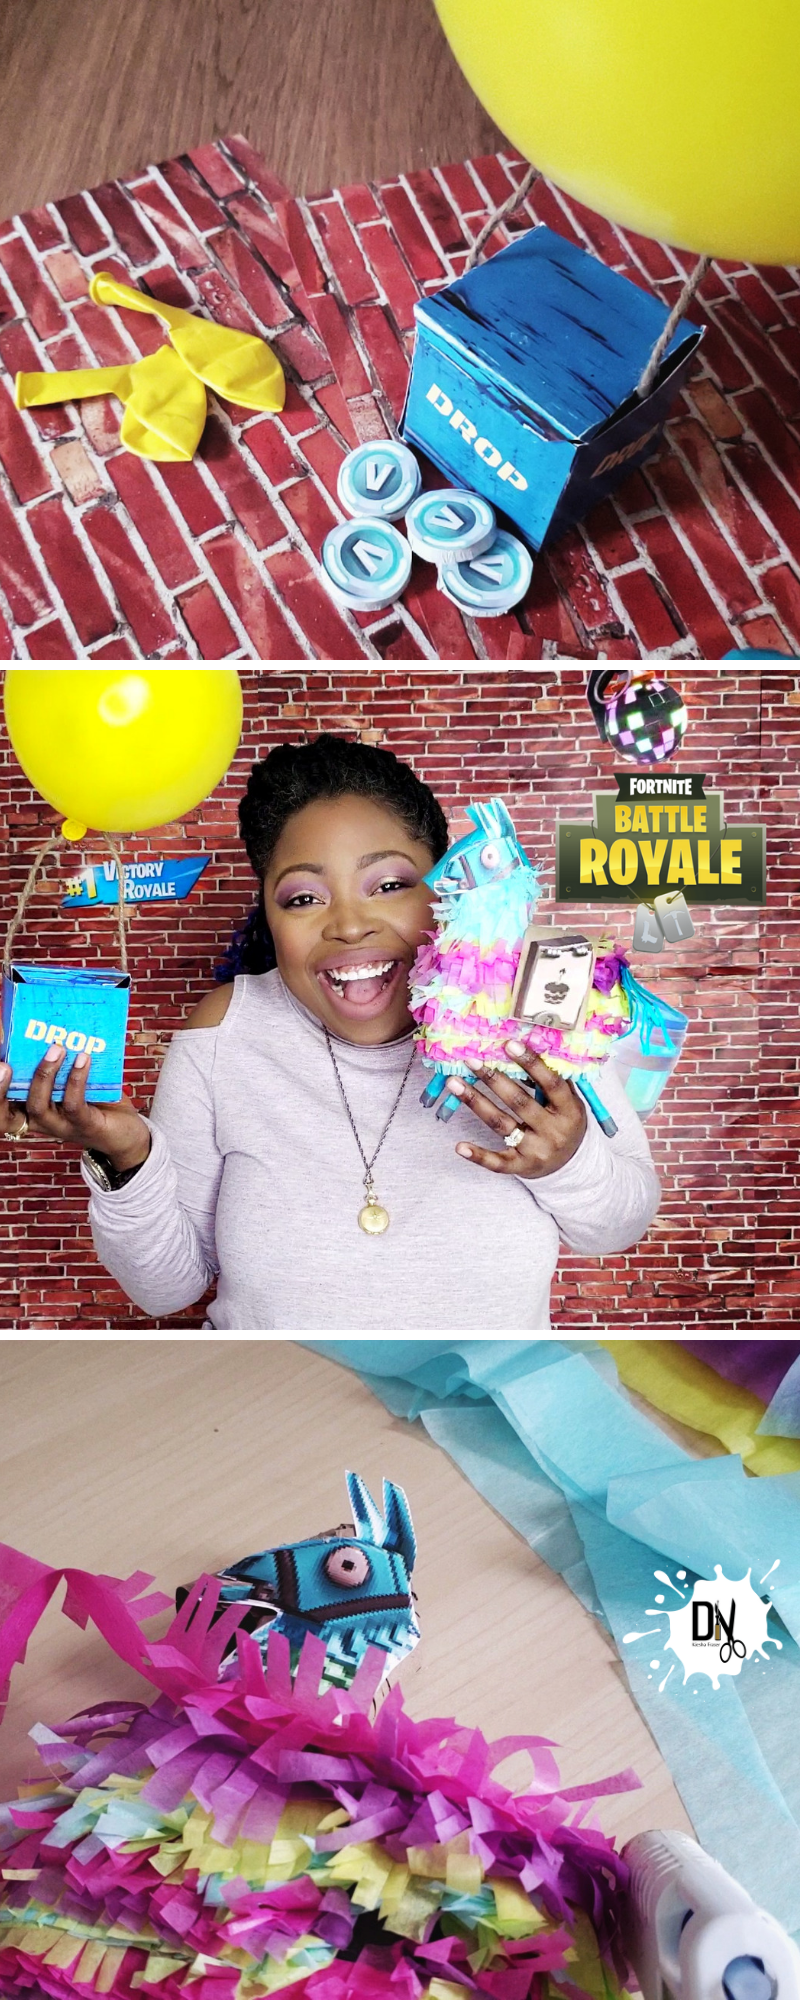 A Fortnite Birthday Party Needs Three Things Try These Fortnite Birthday Party Diy Birthday Party Printables Free Party Printables Free Birthday Party Snacks